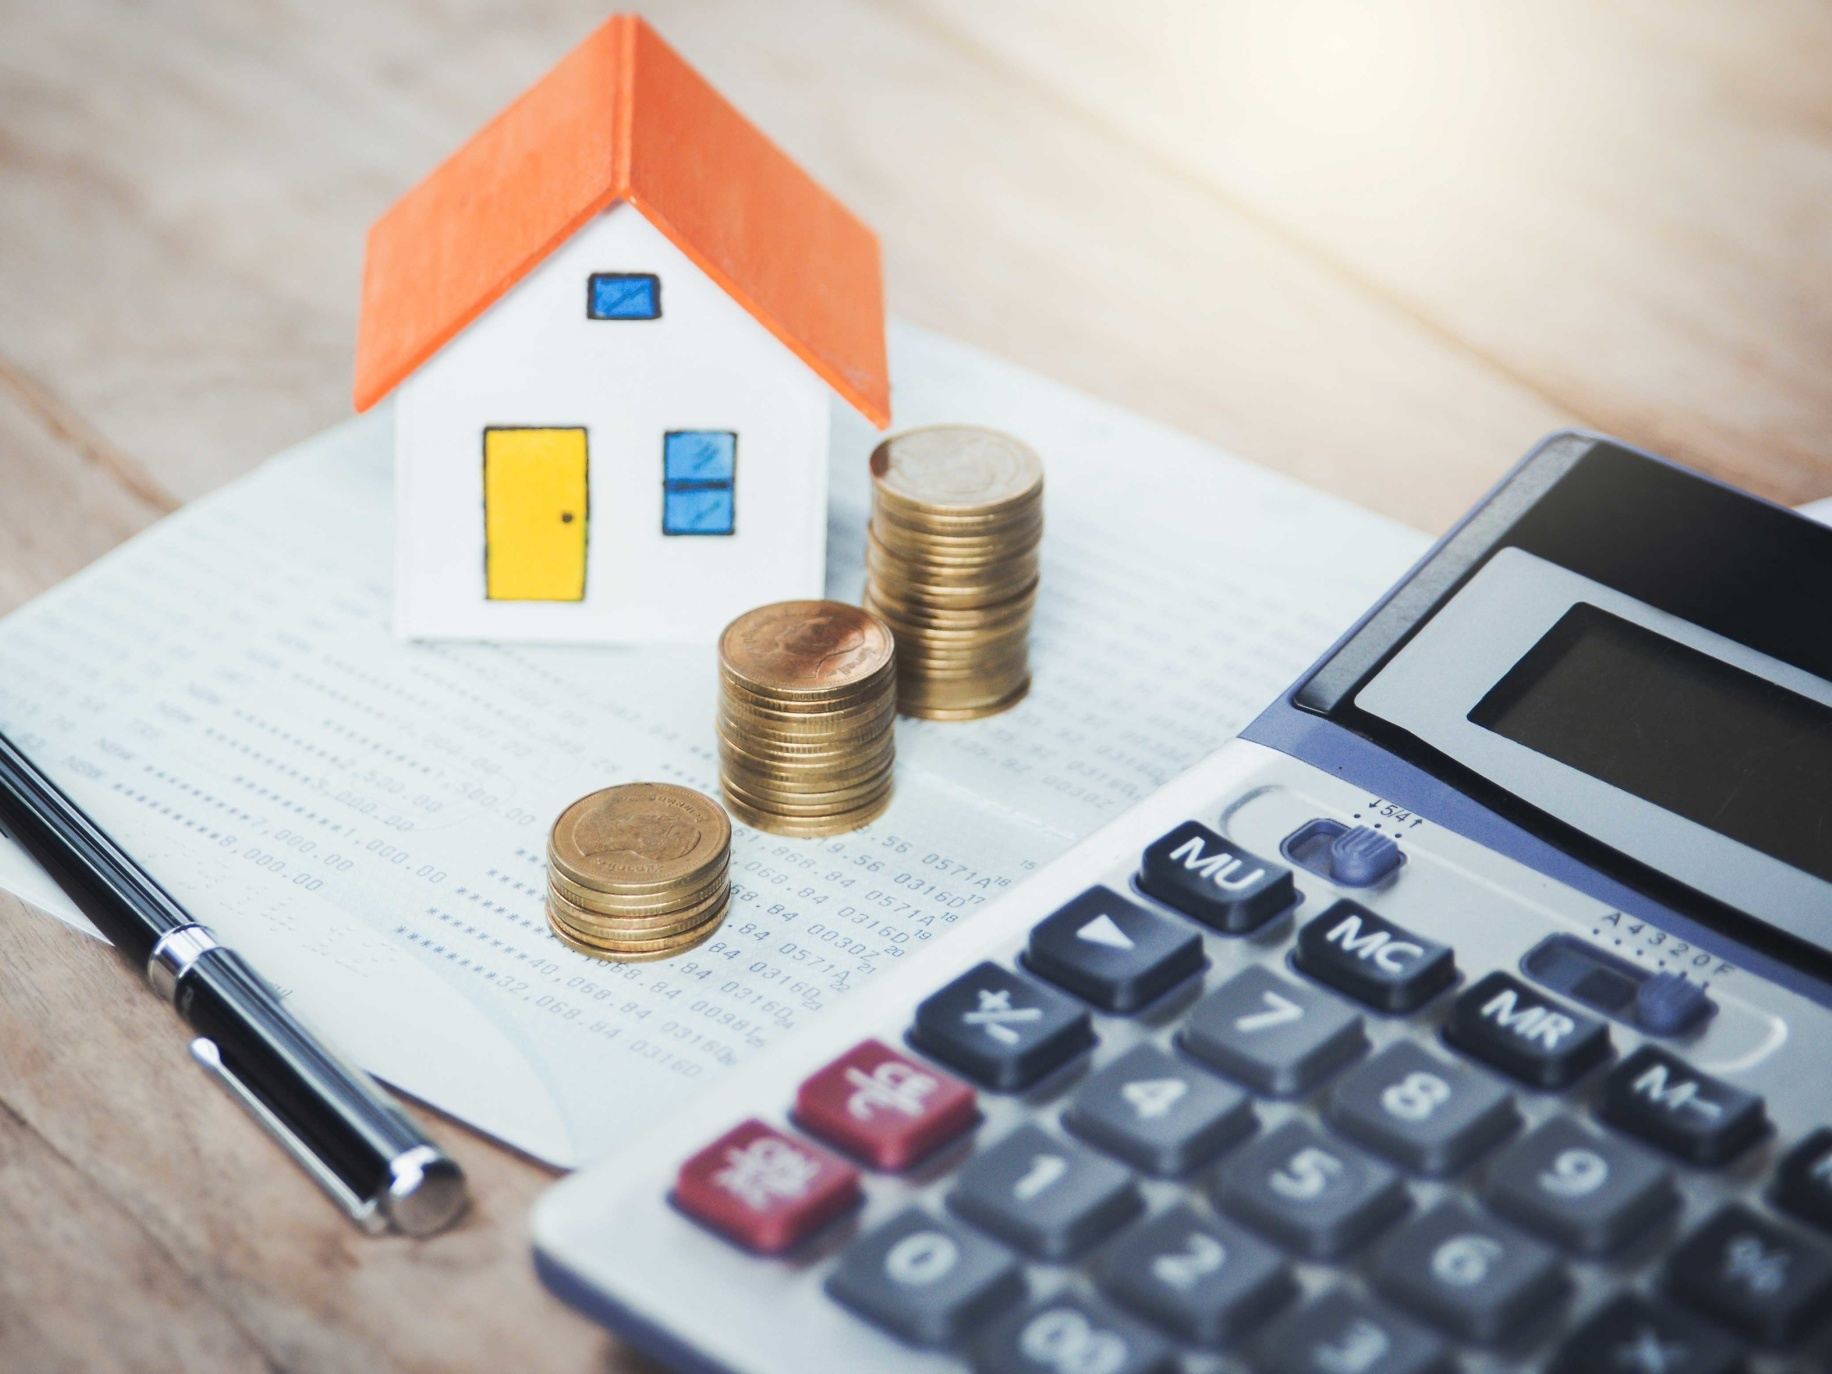 Compare buy to let mortgages | compare the market.